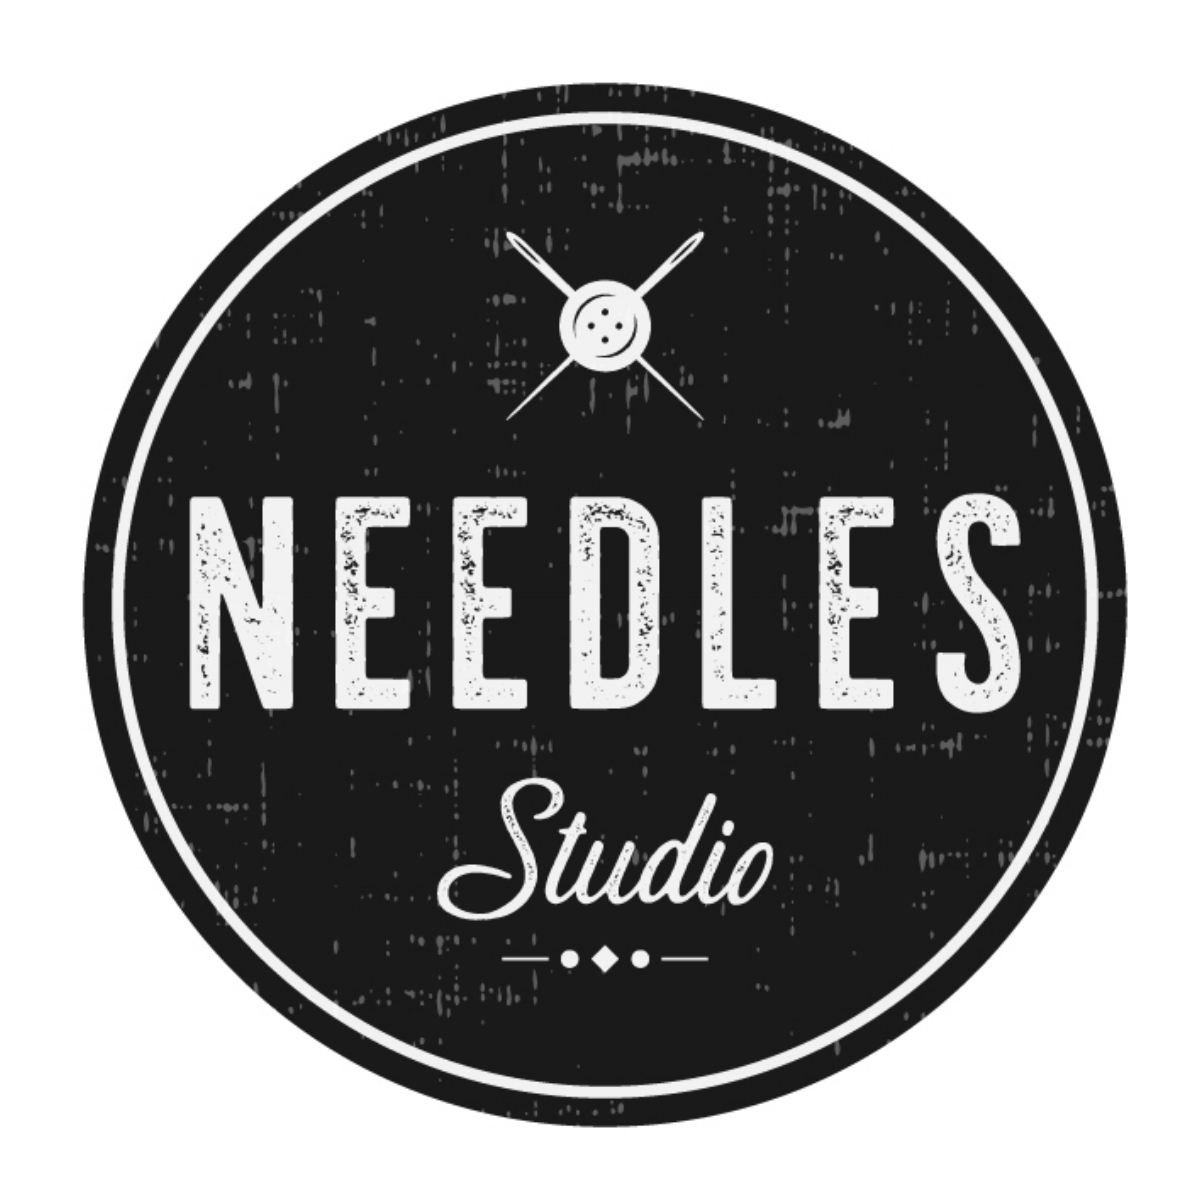 Needles Studio